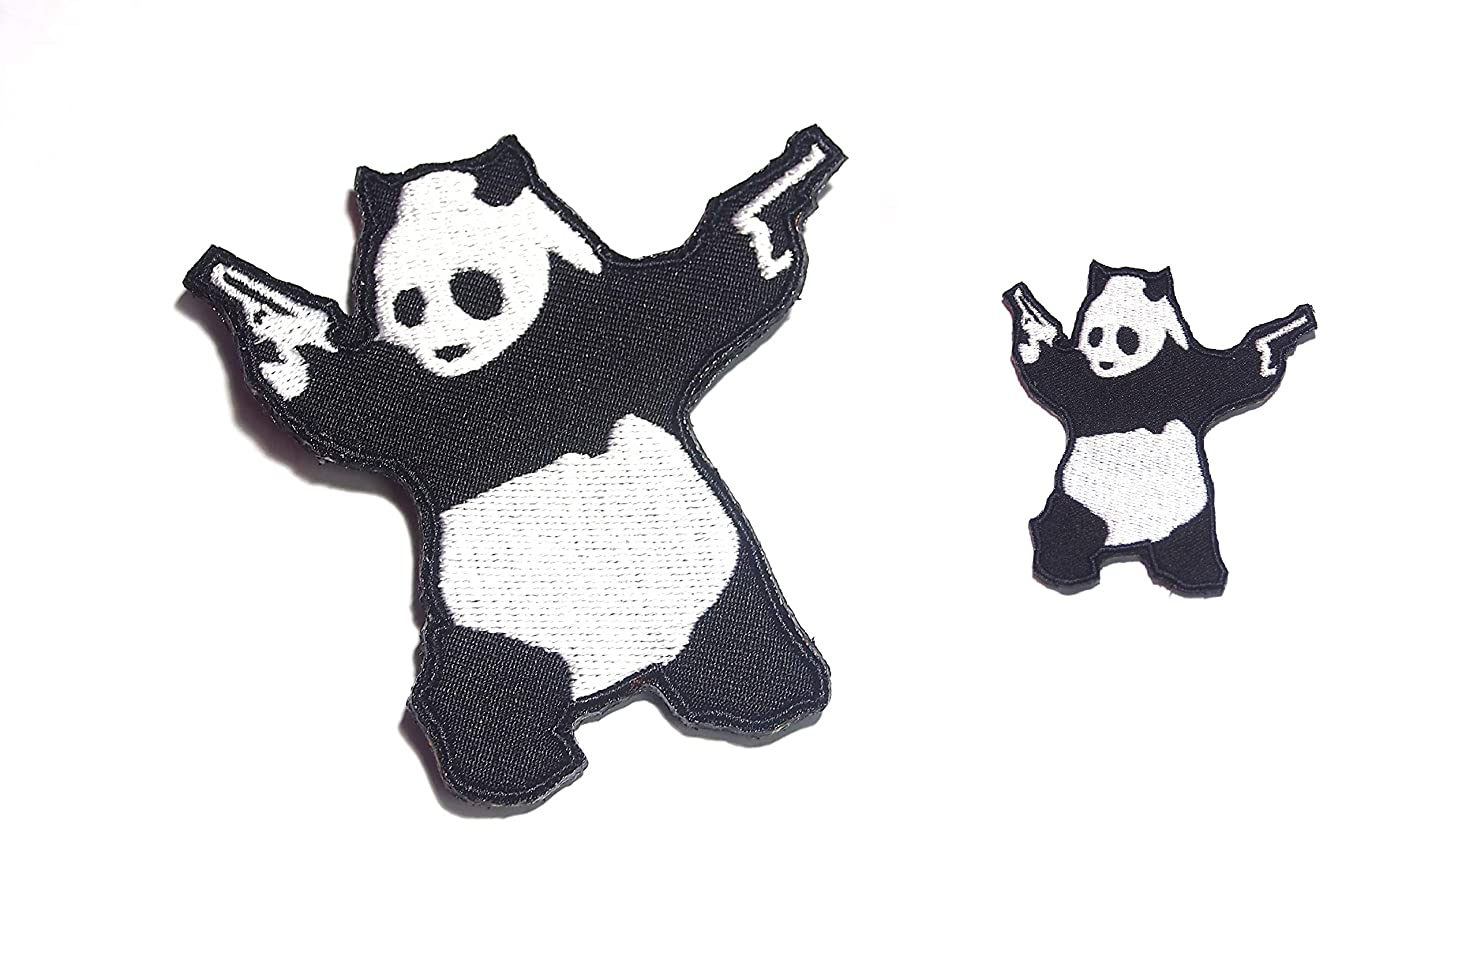 B43 Panda Bear Wielding Pistols Guns Shooting Embroidered Morale Patch 2 Pcs 8X8 and 4X4 cm Hook Backing